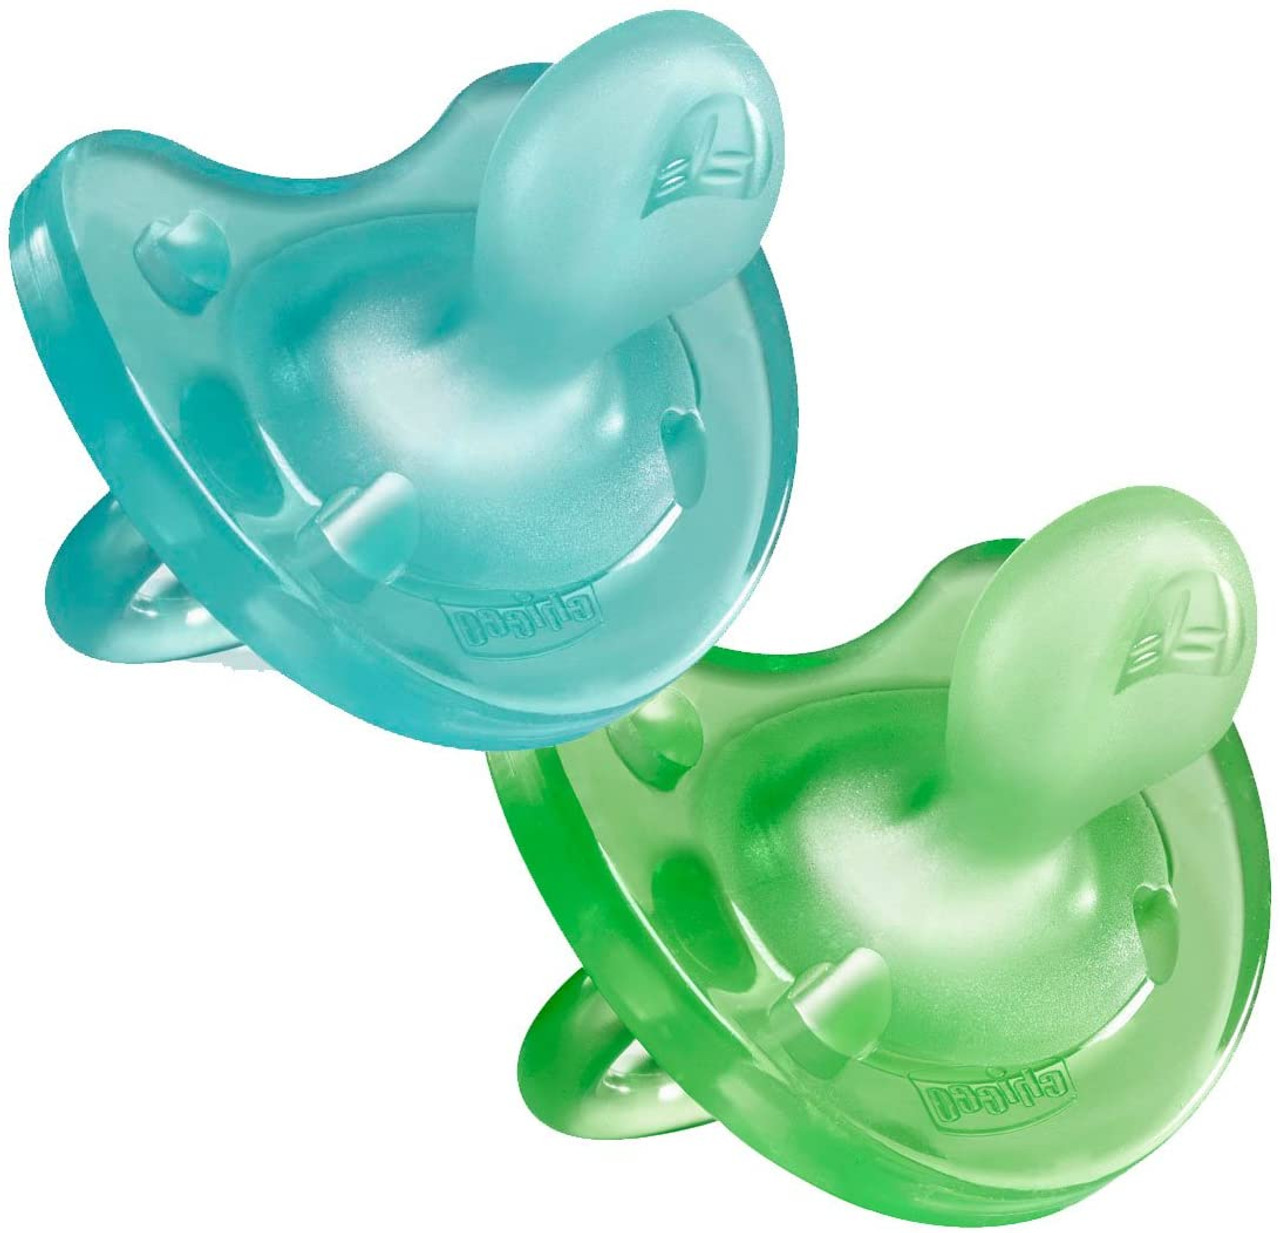 Chicco Physio Soft Soother 2pk 6-16 Months at Baby Barn Discounts Encourage the formation of the correct breathing techniques, and mouth positioning with the Chicco Physio Soft Soother.  100% Silicone and clinically tested to stimulate optimal mouth development.